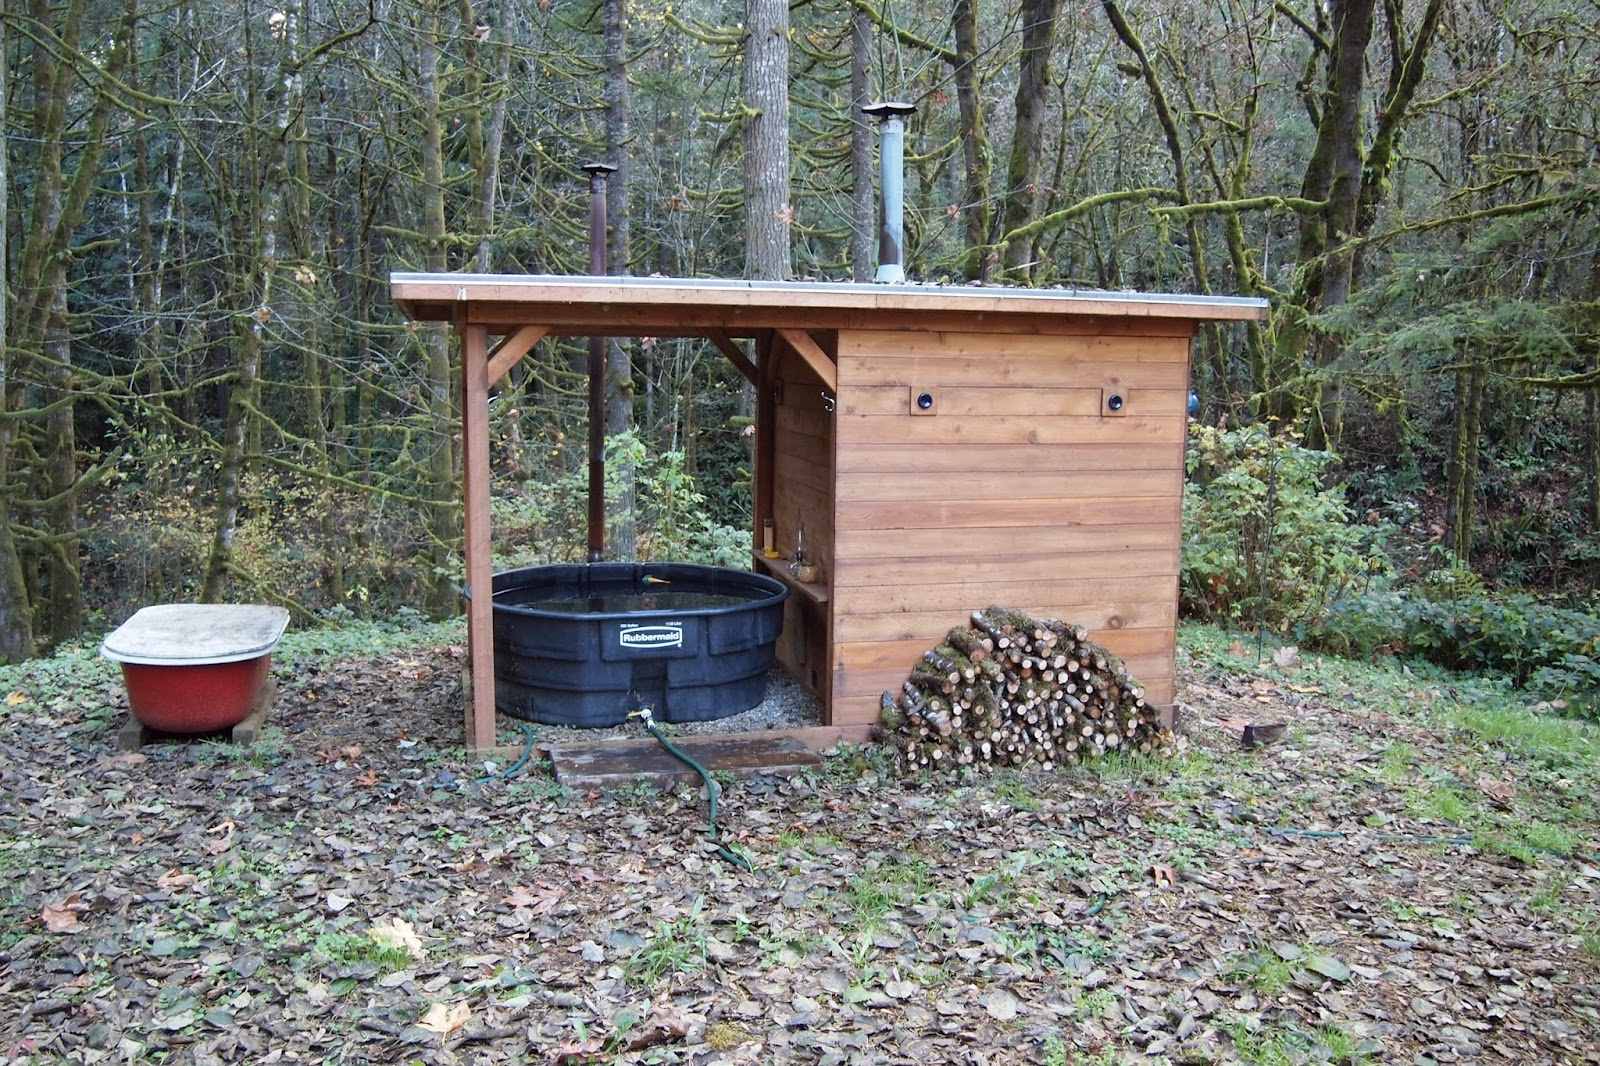 A Few Years Ago I Shared A Popular Post About My Friendsu0027 Do It Yourself  Wood Fired Hot Tub. Since That Time Doug And Erin Had A Kid And Moved To A  ...